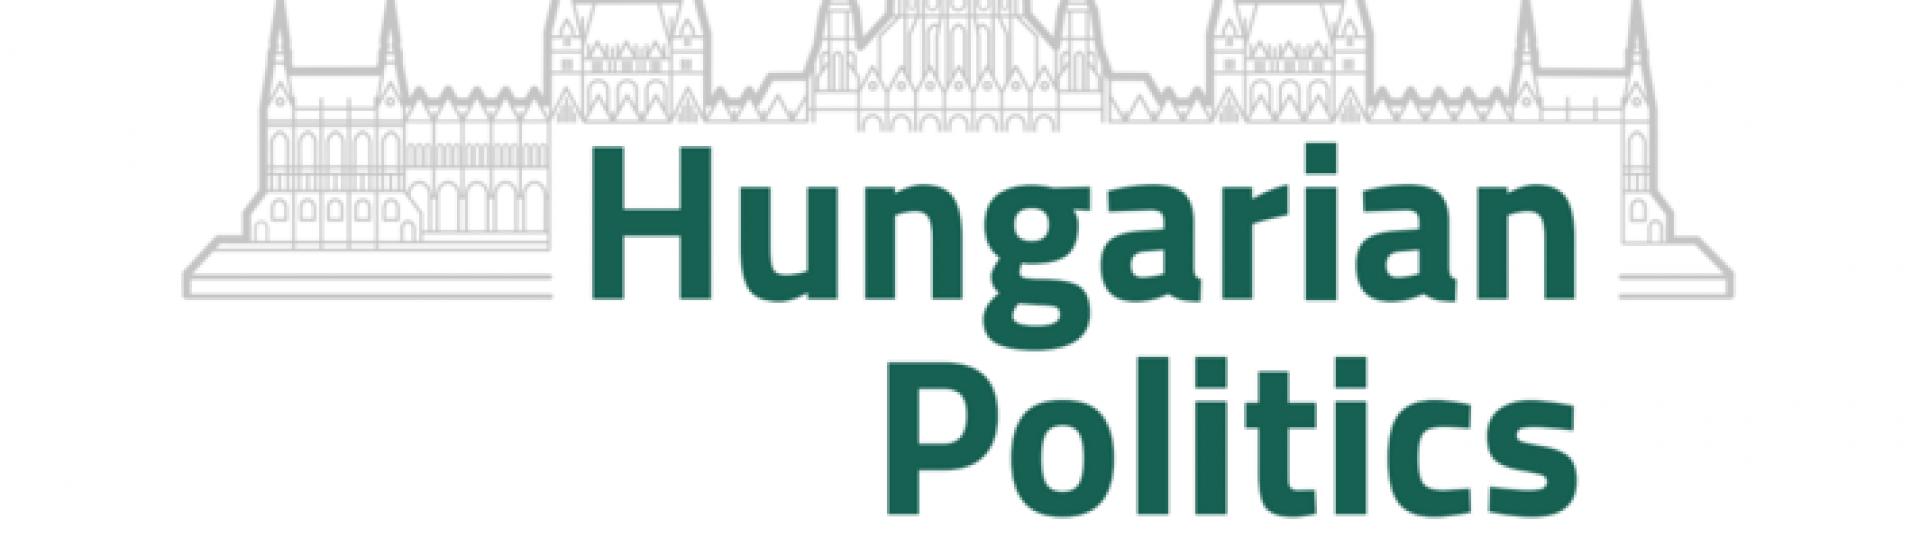 Hungarian Politics in 2018